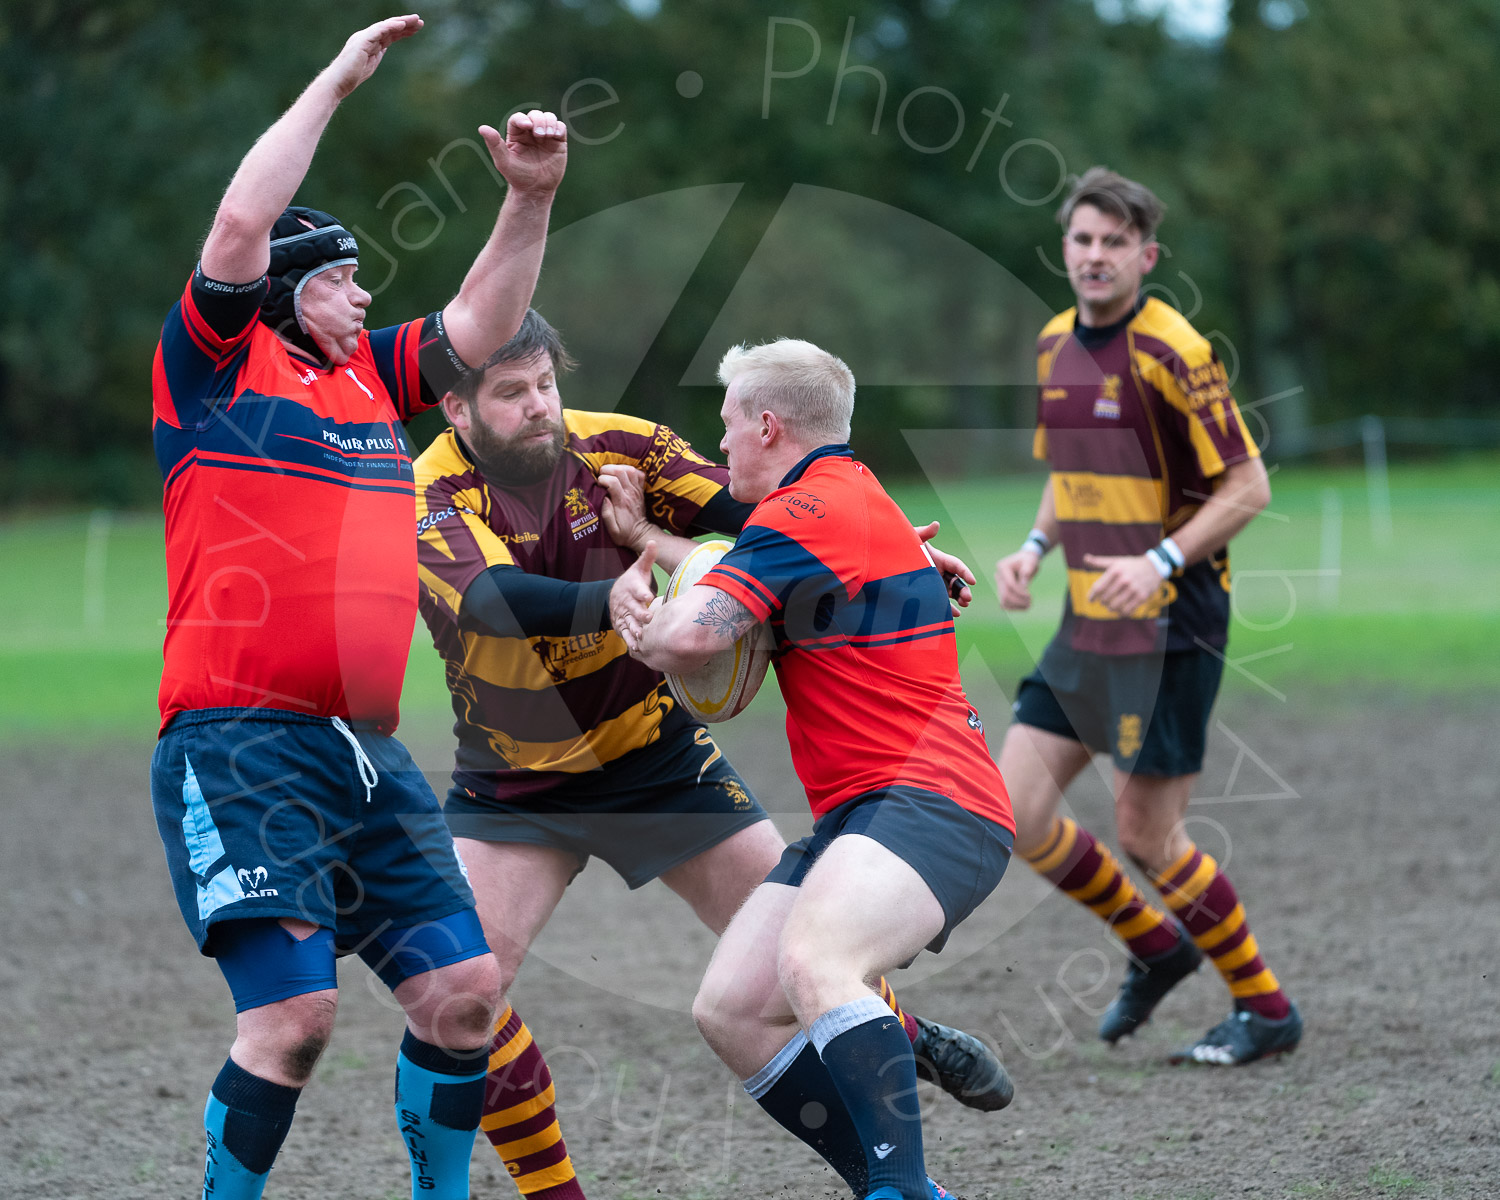 20181027 Amp Extras vs St Neots 2nd XV #2202